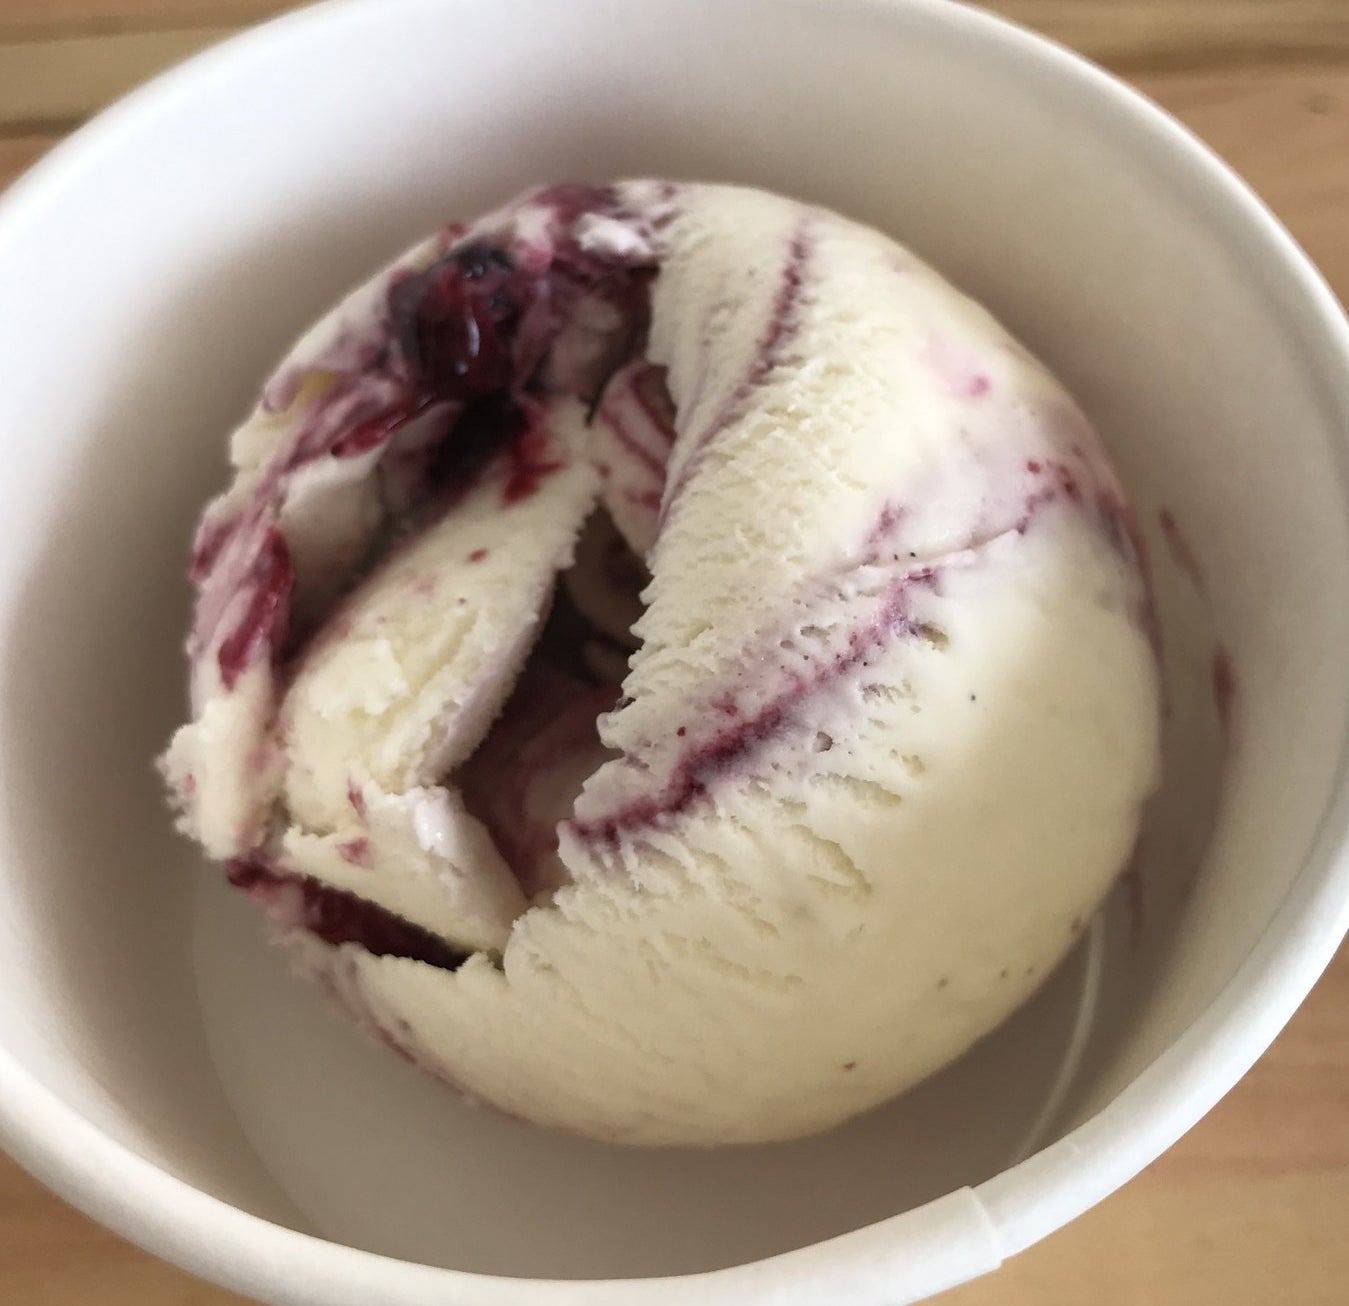 What's in it: Marscapone ice cream swirled with a house-made jam of blackberry wine, red currants, and wild forest berries.